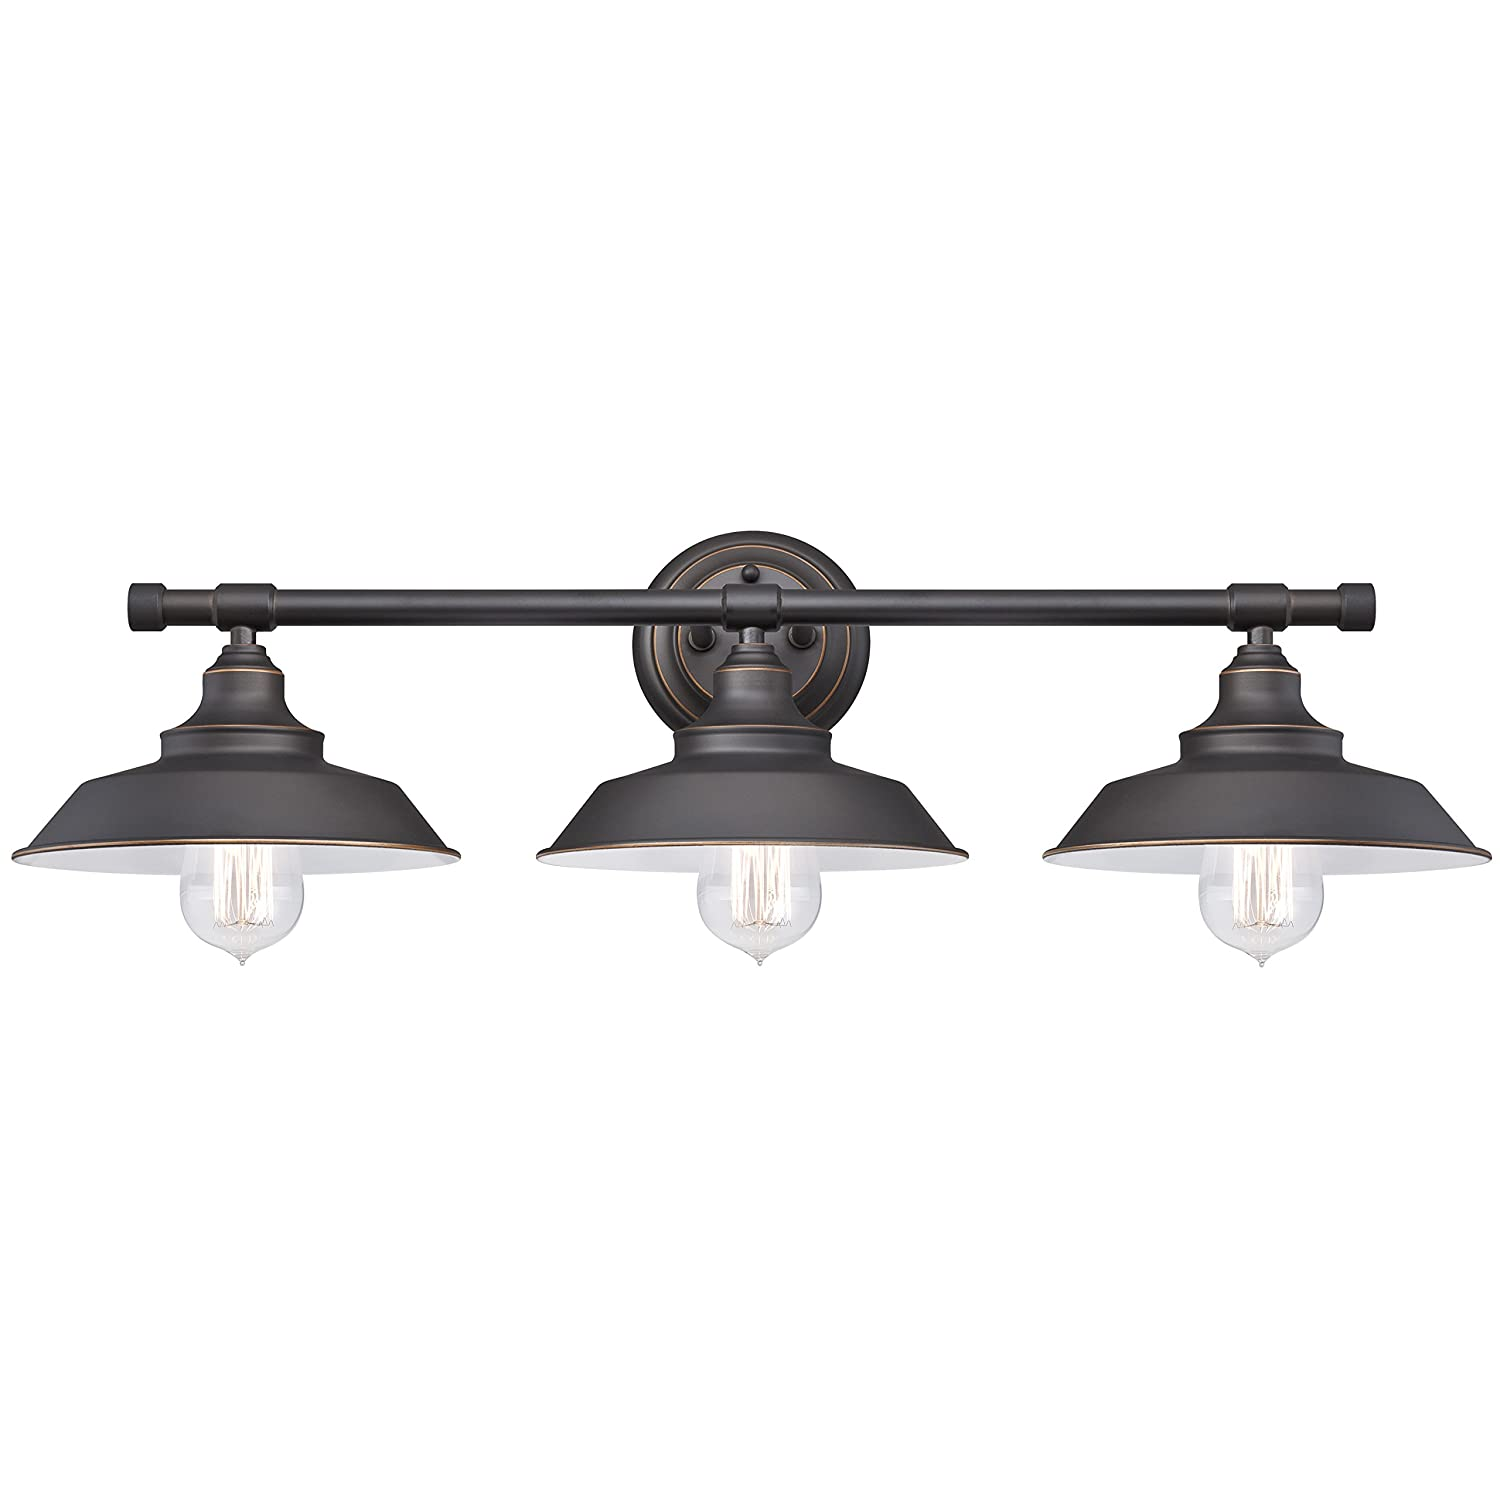 Amazon Com Westinghouse 6343400 Iron Hill Three Light Indoor Wall Fixture Oil Rubbed Bronze Finish With Highlights And Metal Shades Home Improvement